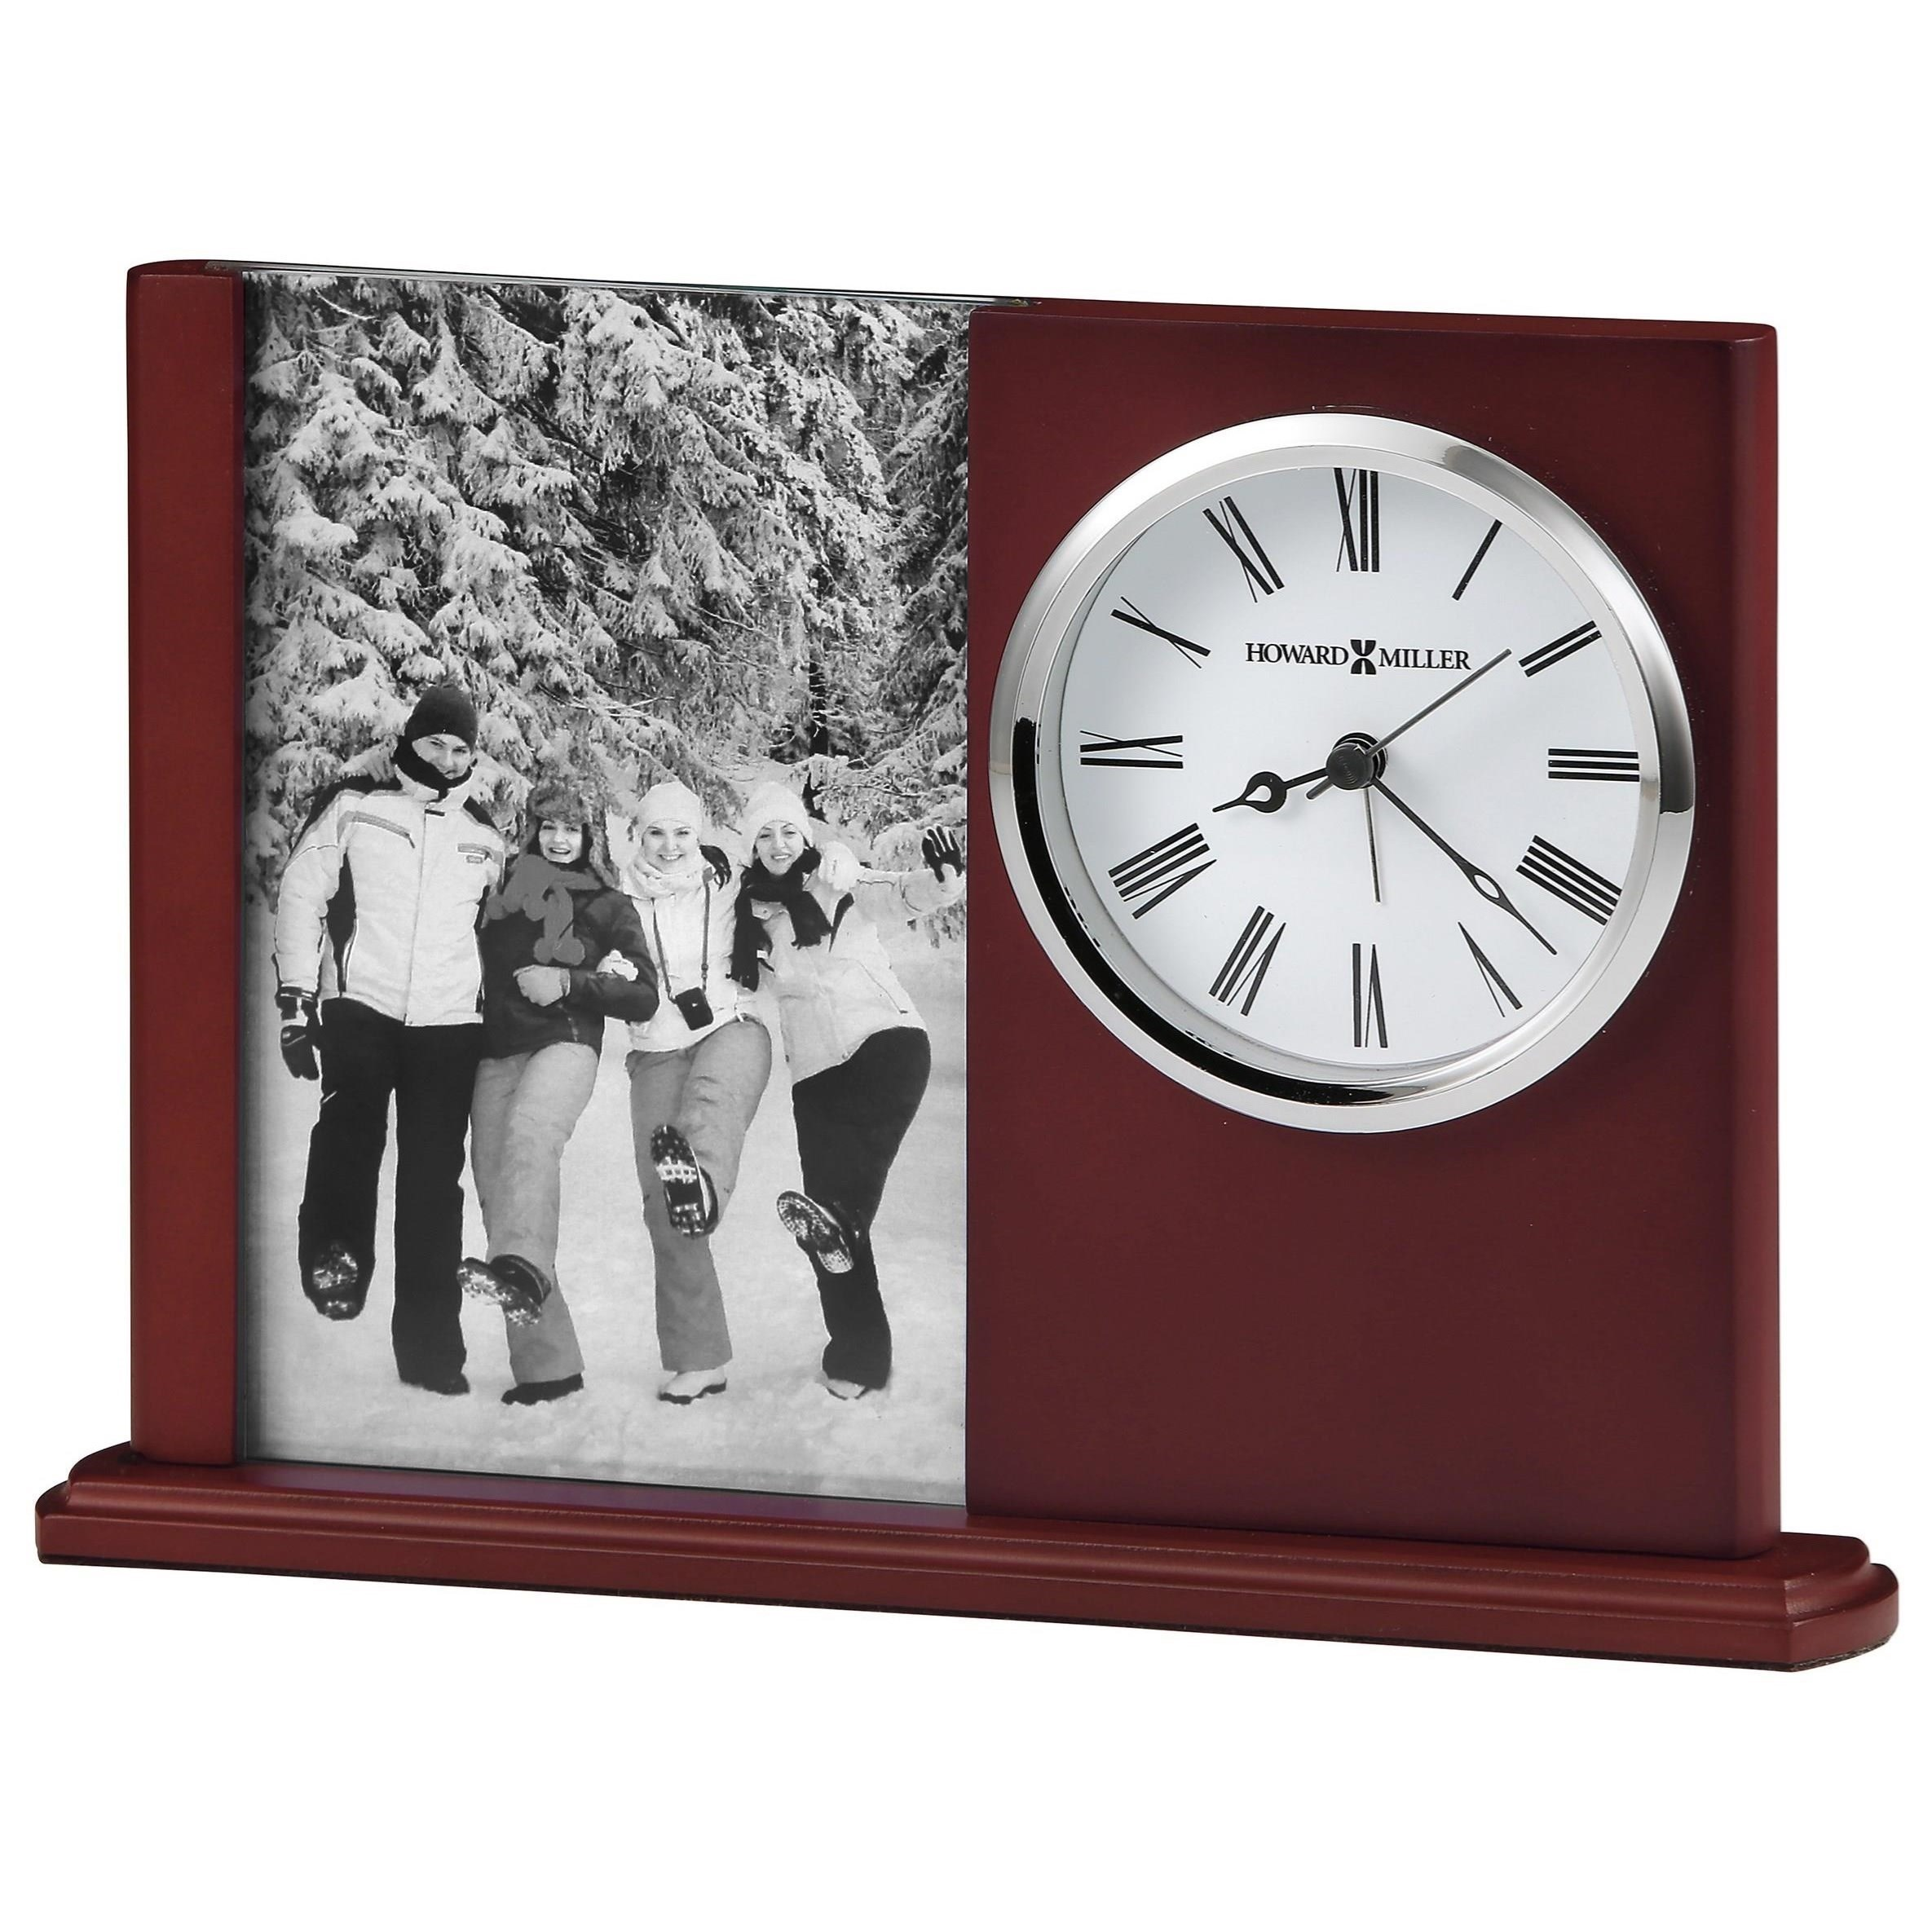 Special Clock Table Mantel Clocks Portrait Caddy Ii Table Clock With Picture Frame By Howard Miller At Rotmans